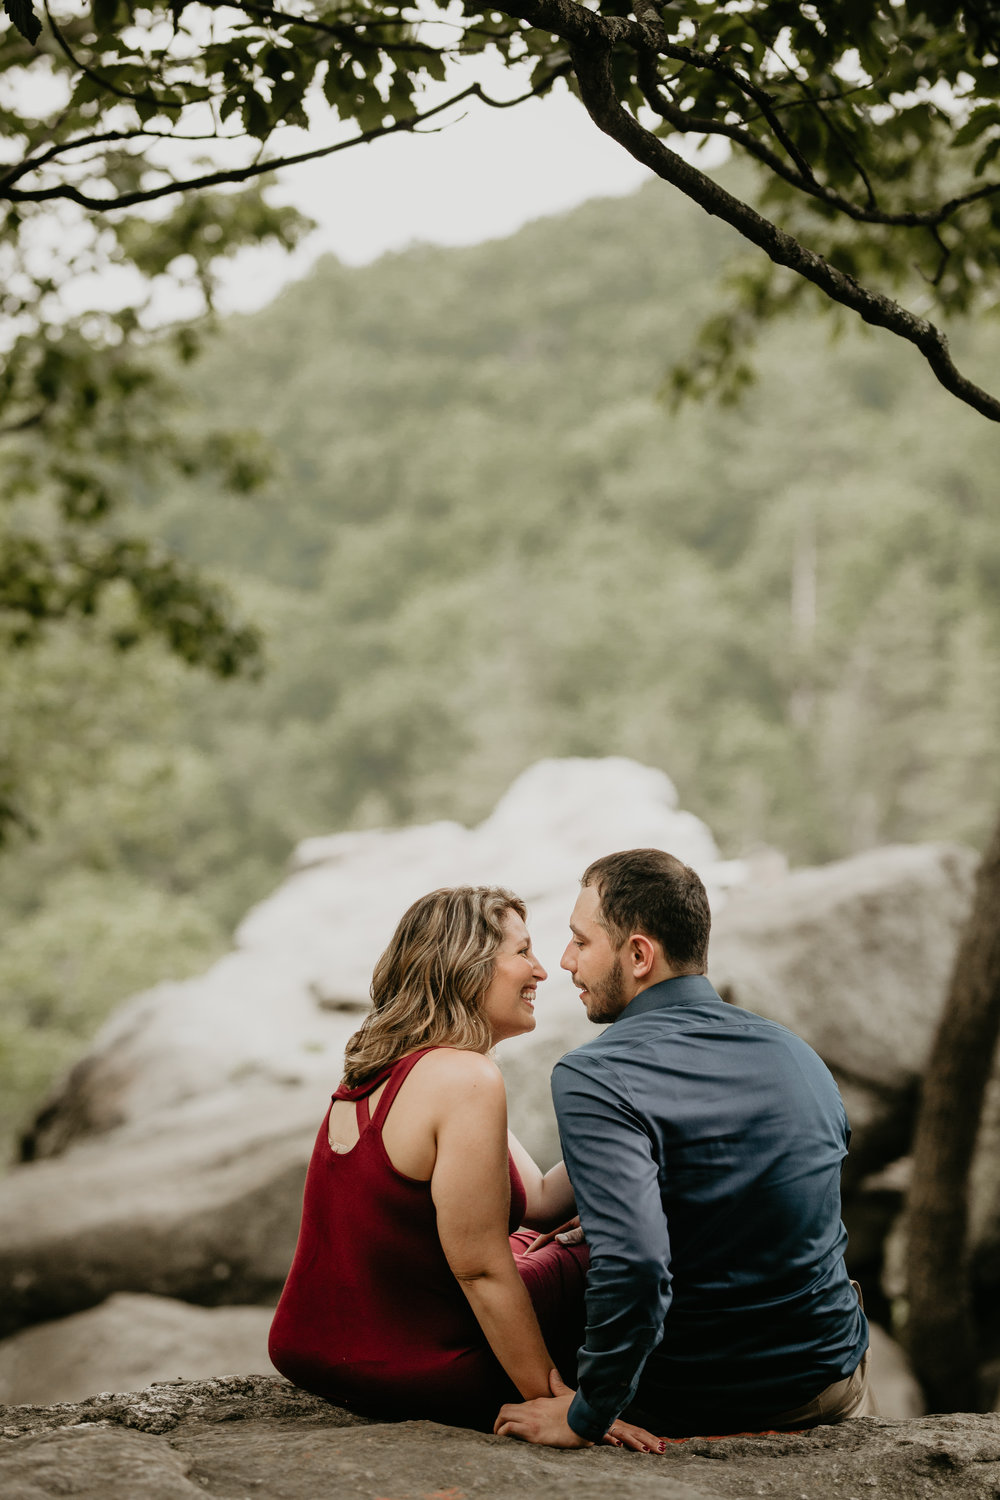 Nicole-Daacke-Photography-rock-state-park-overlook-king-queen-seat-maryland-hiking-adventure-engagement-session-photos-portraits-summer-bel-air-dog-engagement-session-20.jpg